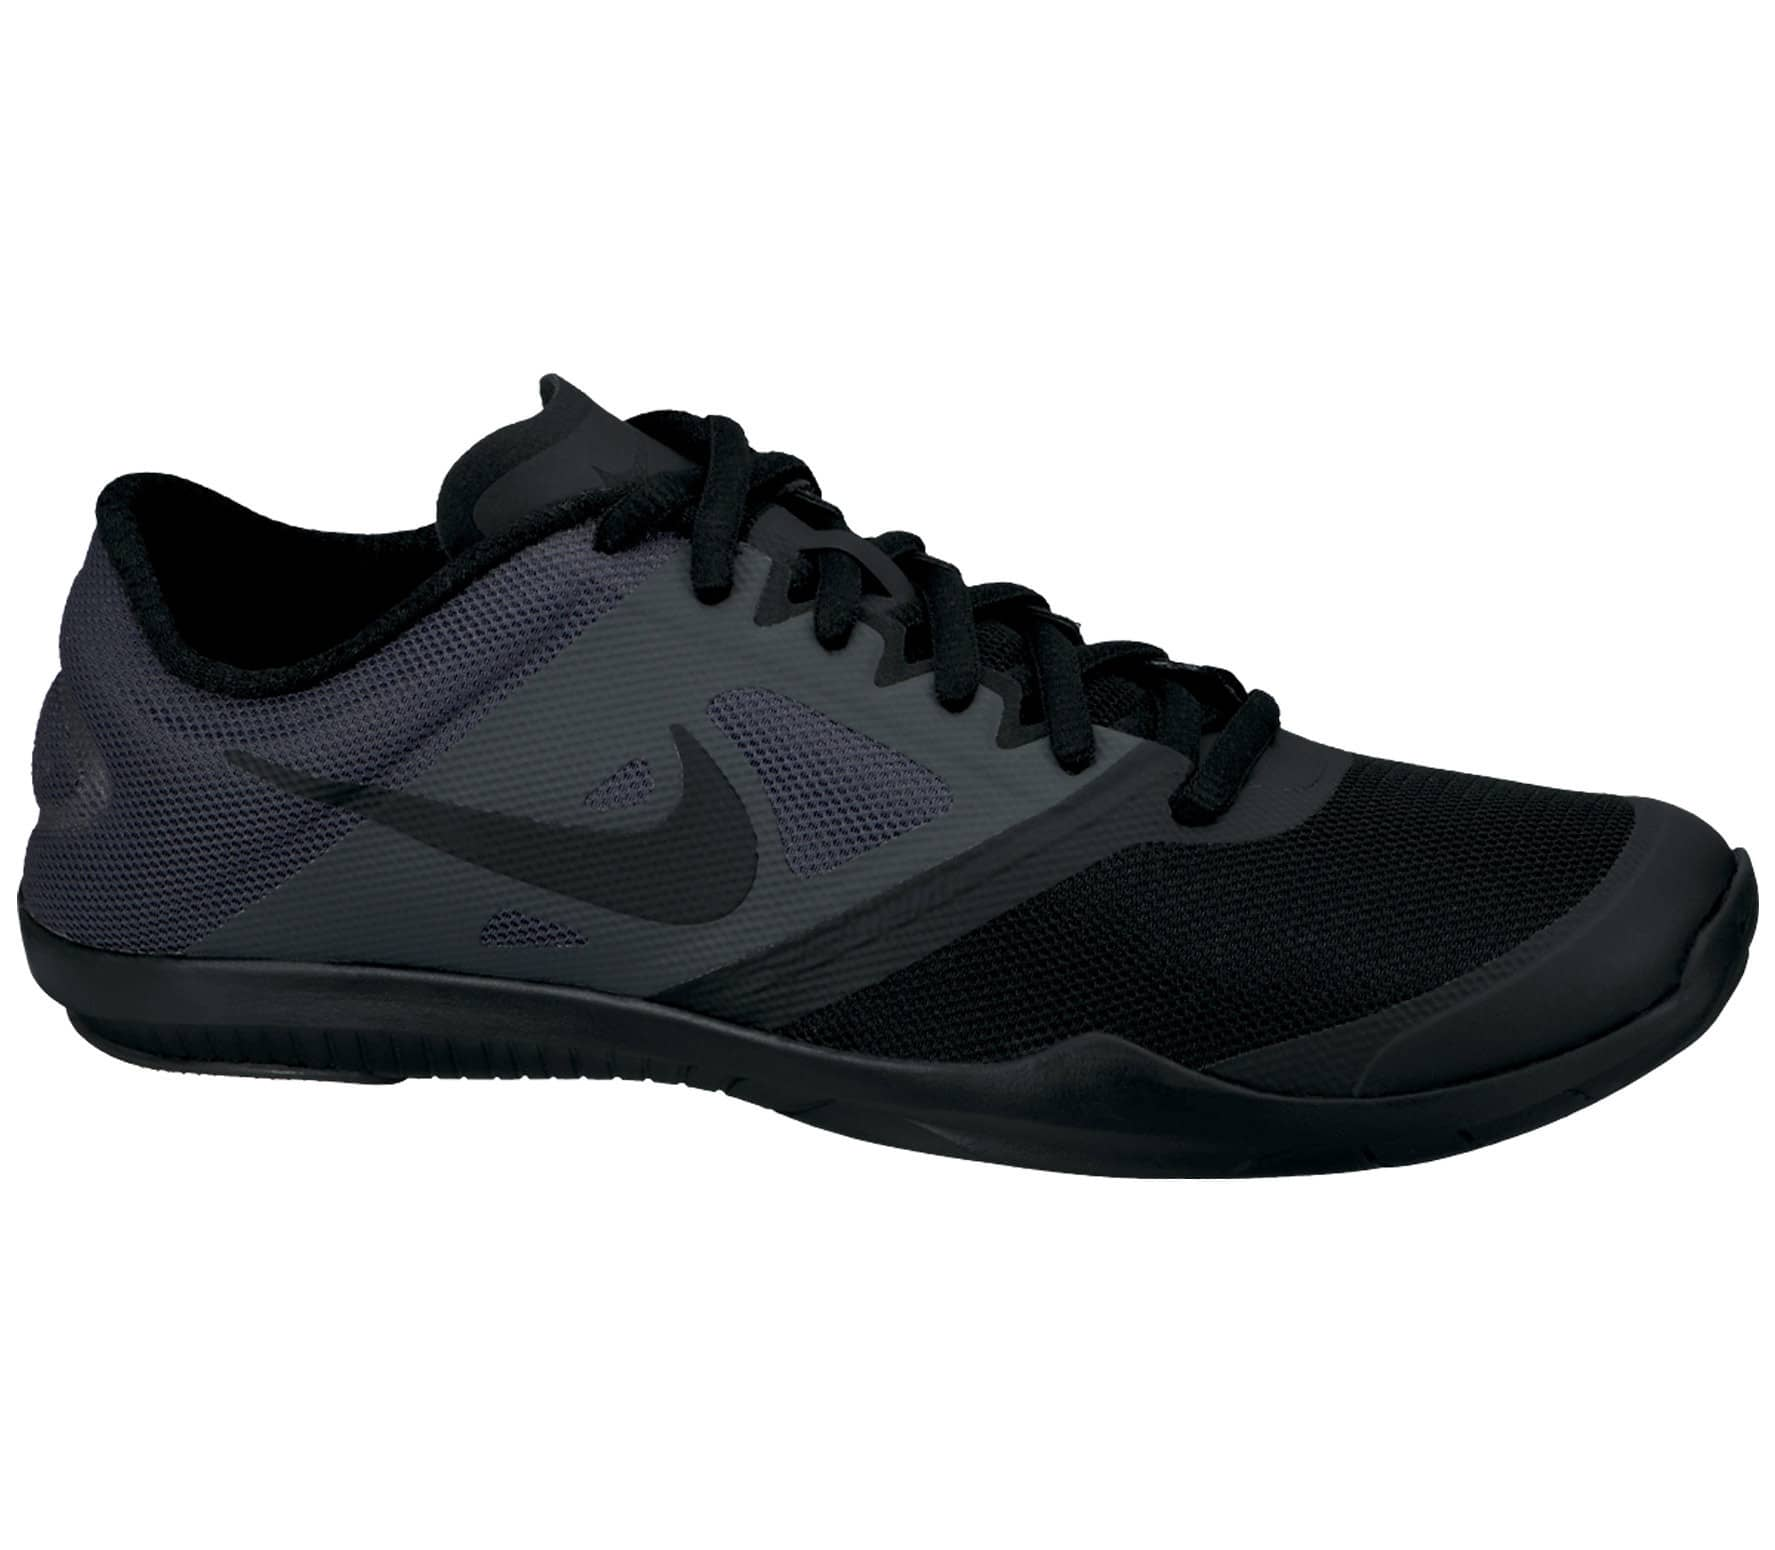 9d243c5f Nike - Studio Trainer 2 women's training shoes (black)